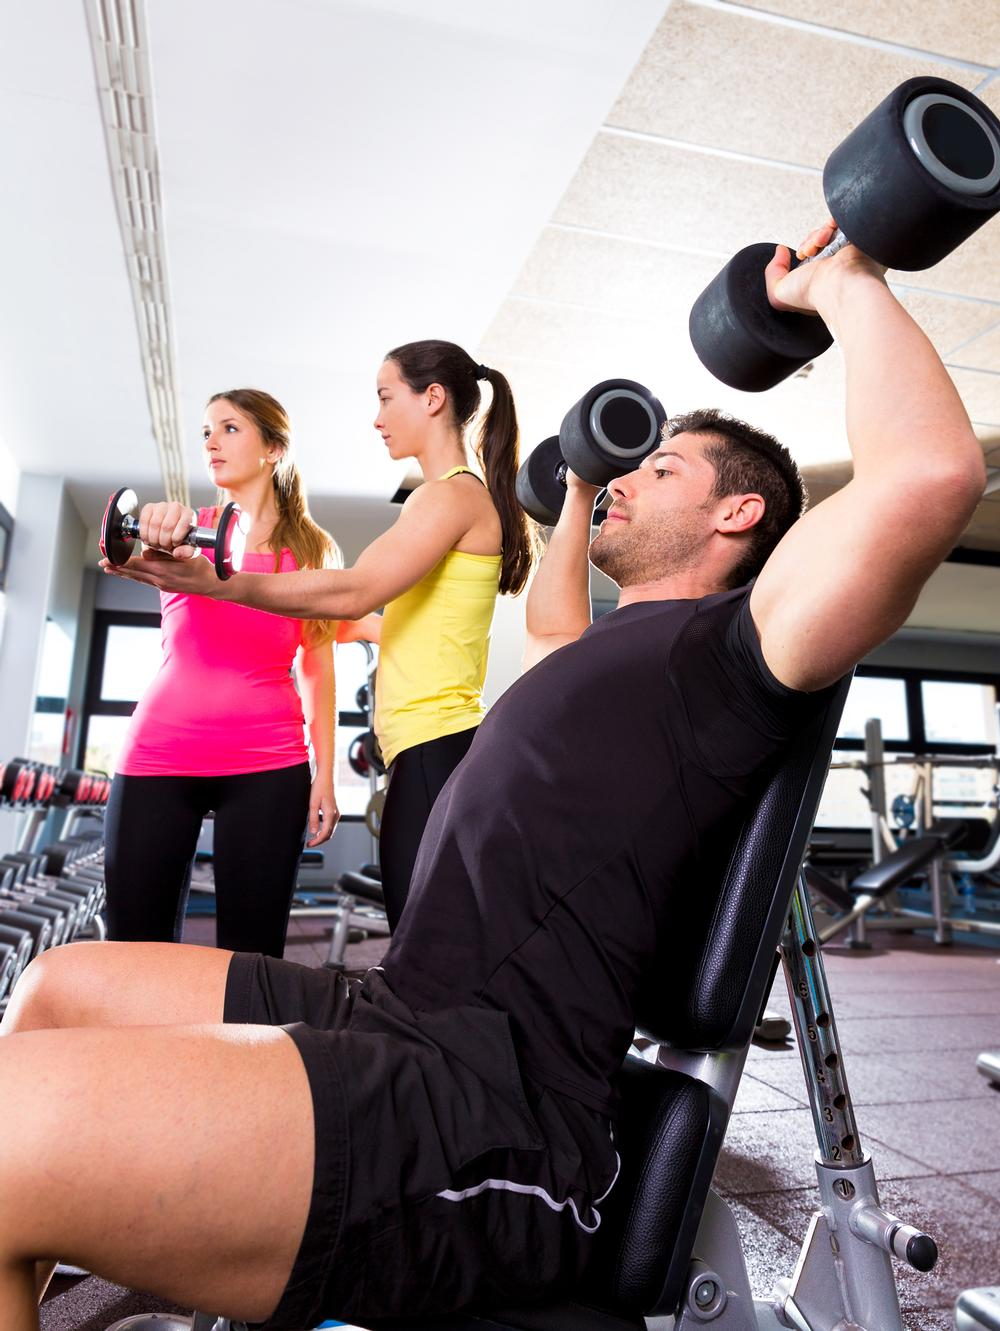 Young male gym-goers aren't talked to by fitness staff as often as female members / photo: www.shutterstock.com